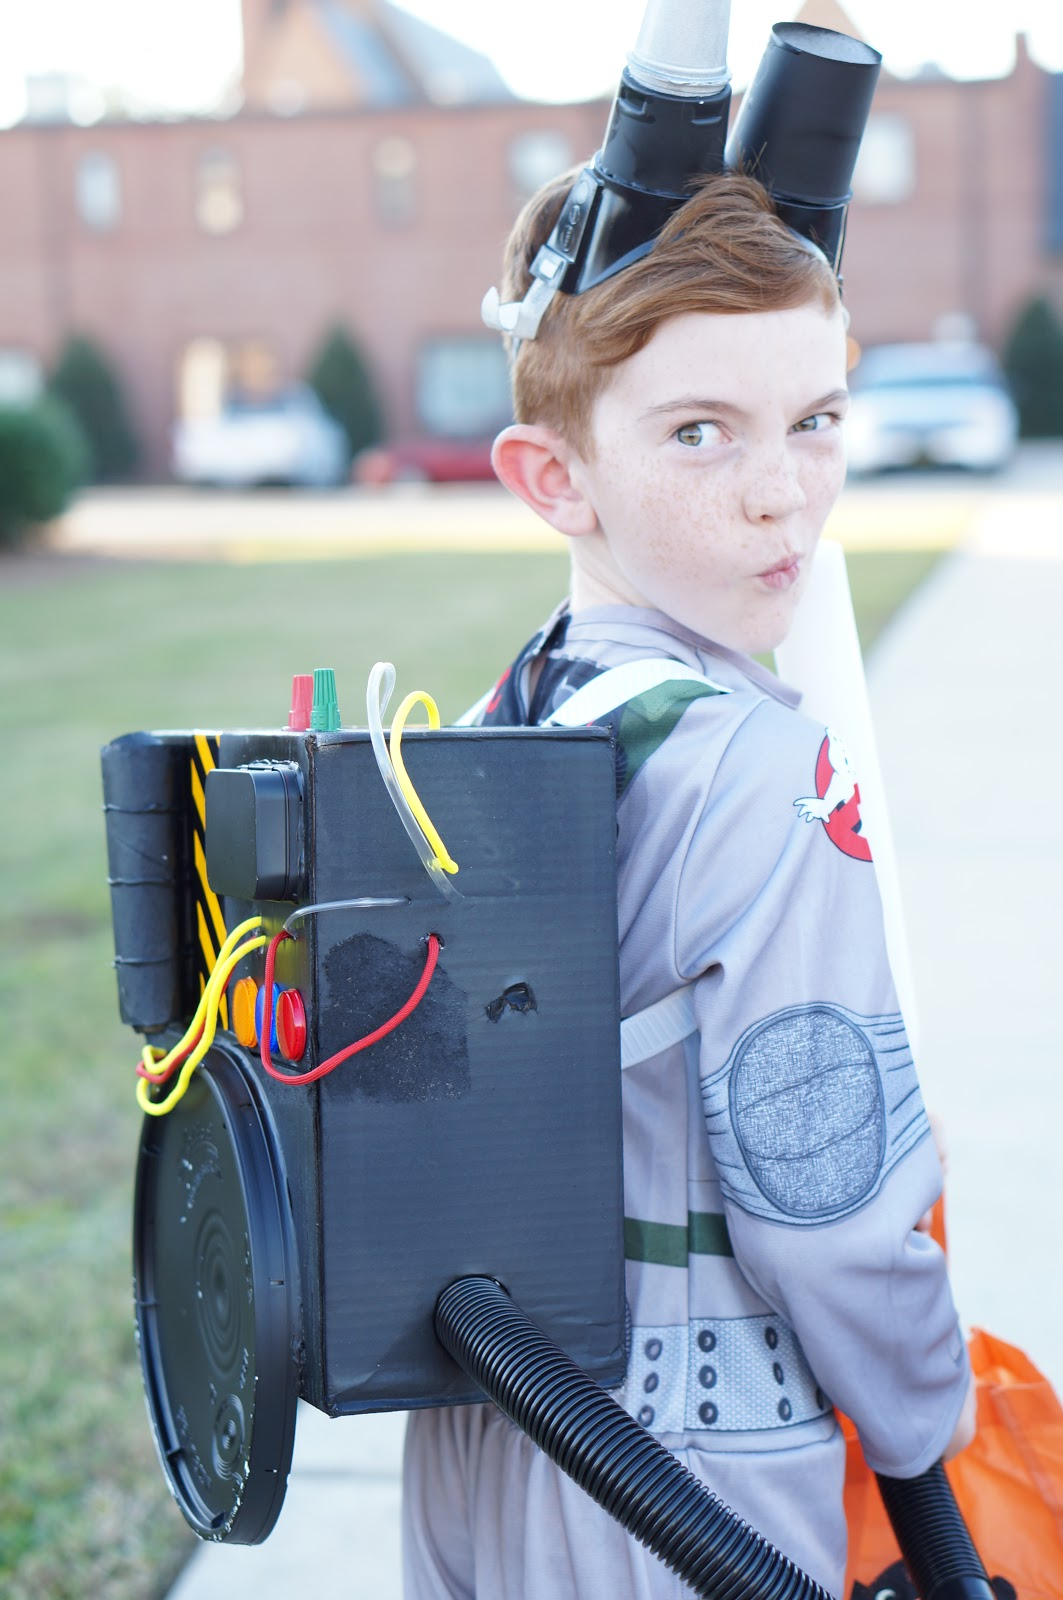 NC blogger Rebecca Lately is sharing a few homemade Halloween costumes for kids for inspiration this Halloween season!